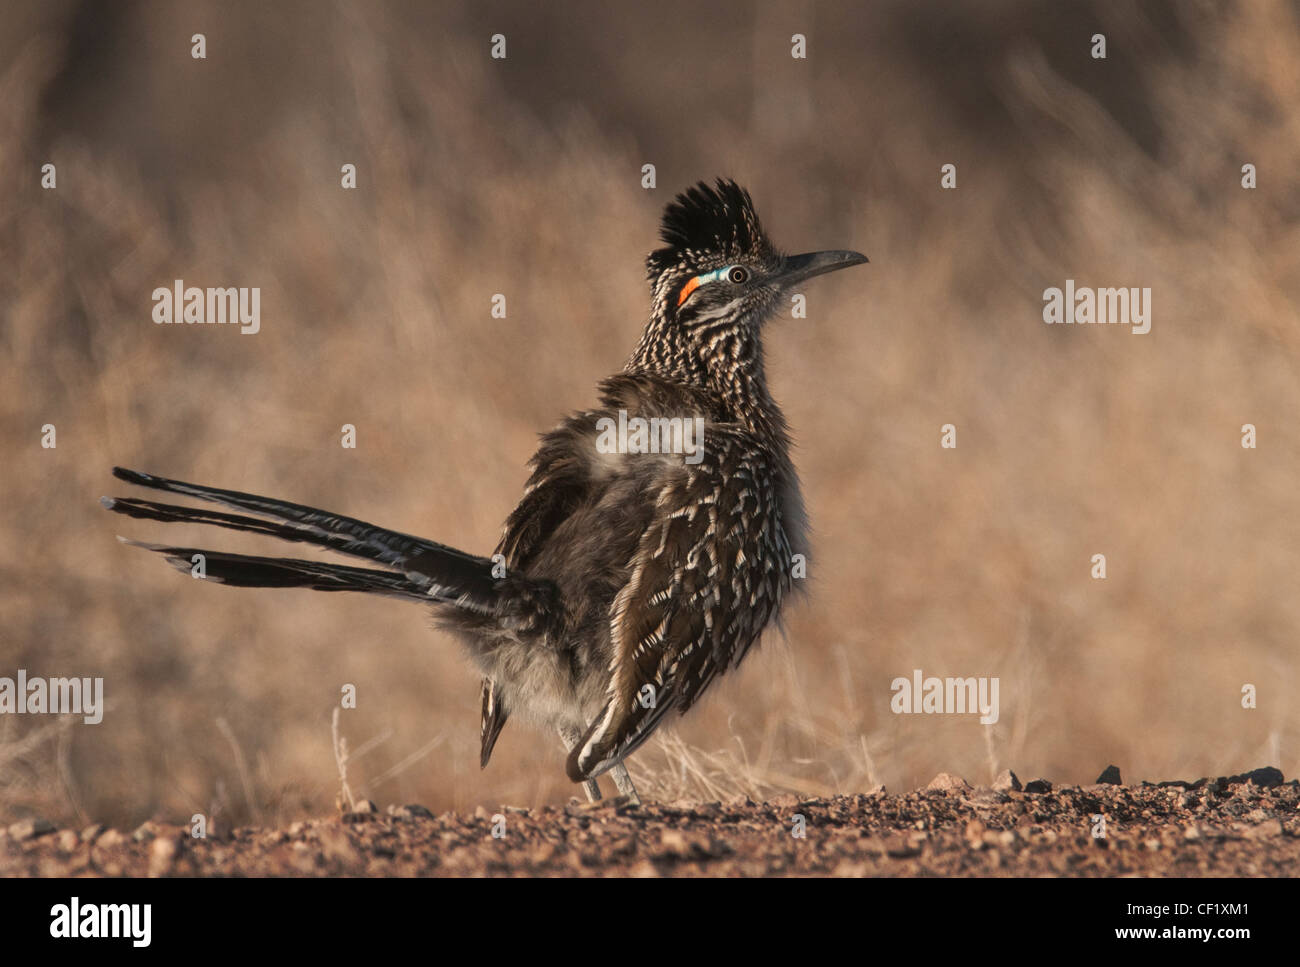 The Roadrunner of Cuckoo is a ground dwelling bird more apt to run than fly from danger. - Stock Image